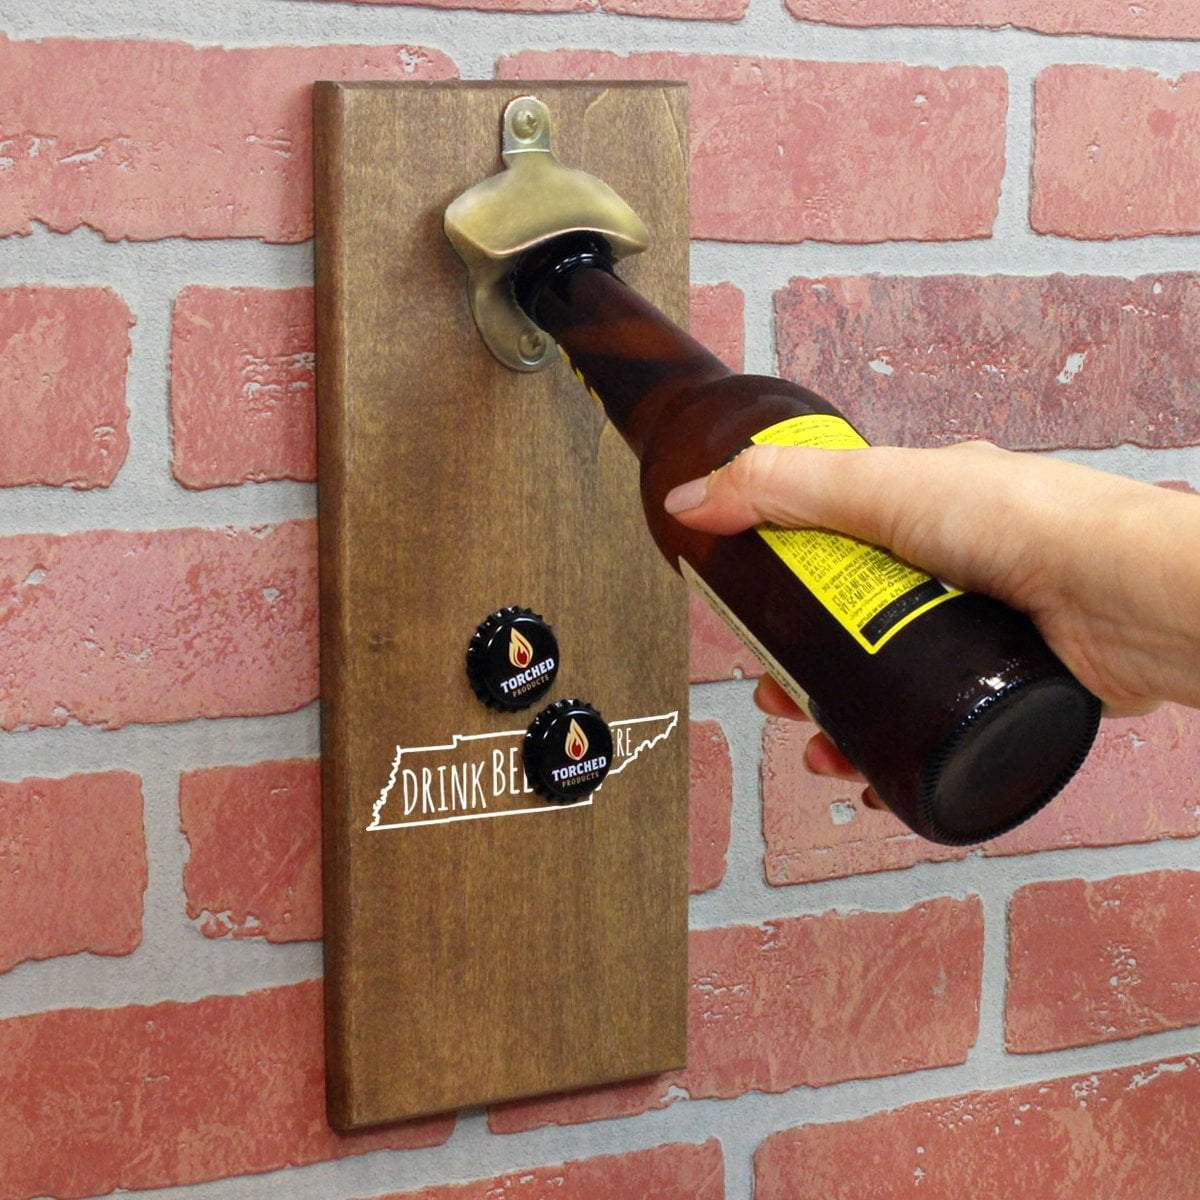 Torched Products Bottle Opener Default Title Tennessee Drink Beer From Here Cap Catching Magnetic Bottle Opener (781501137013)